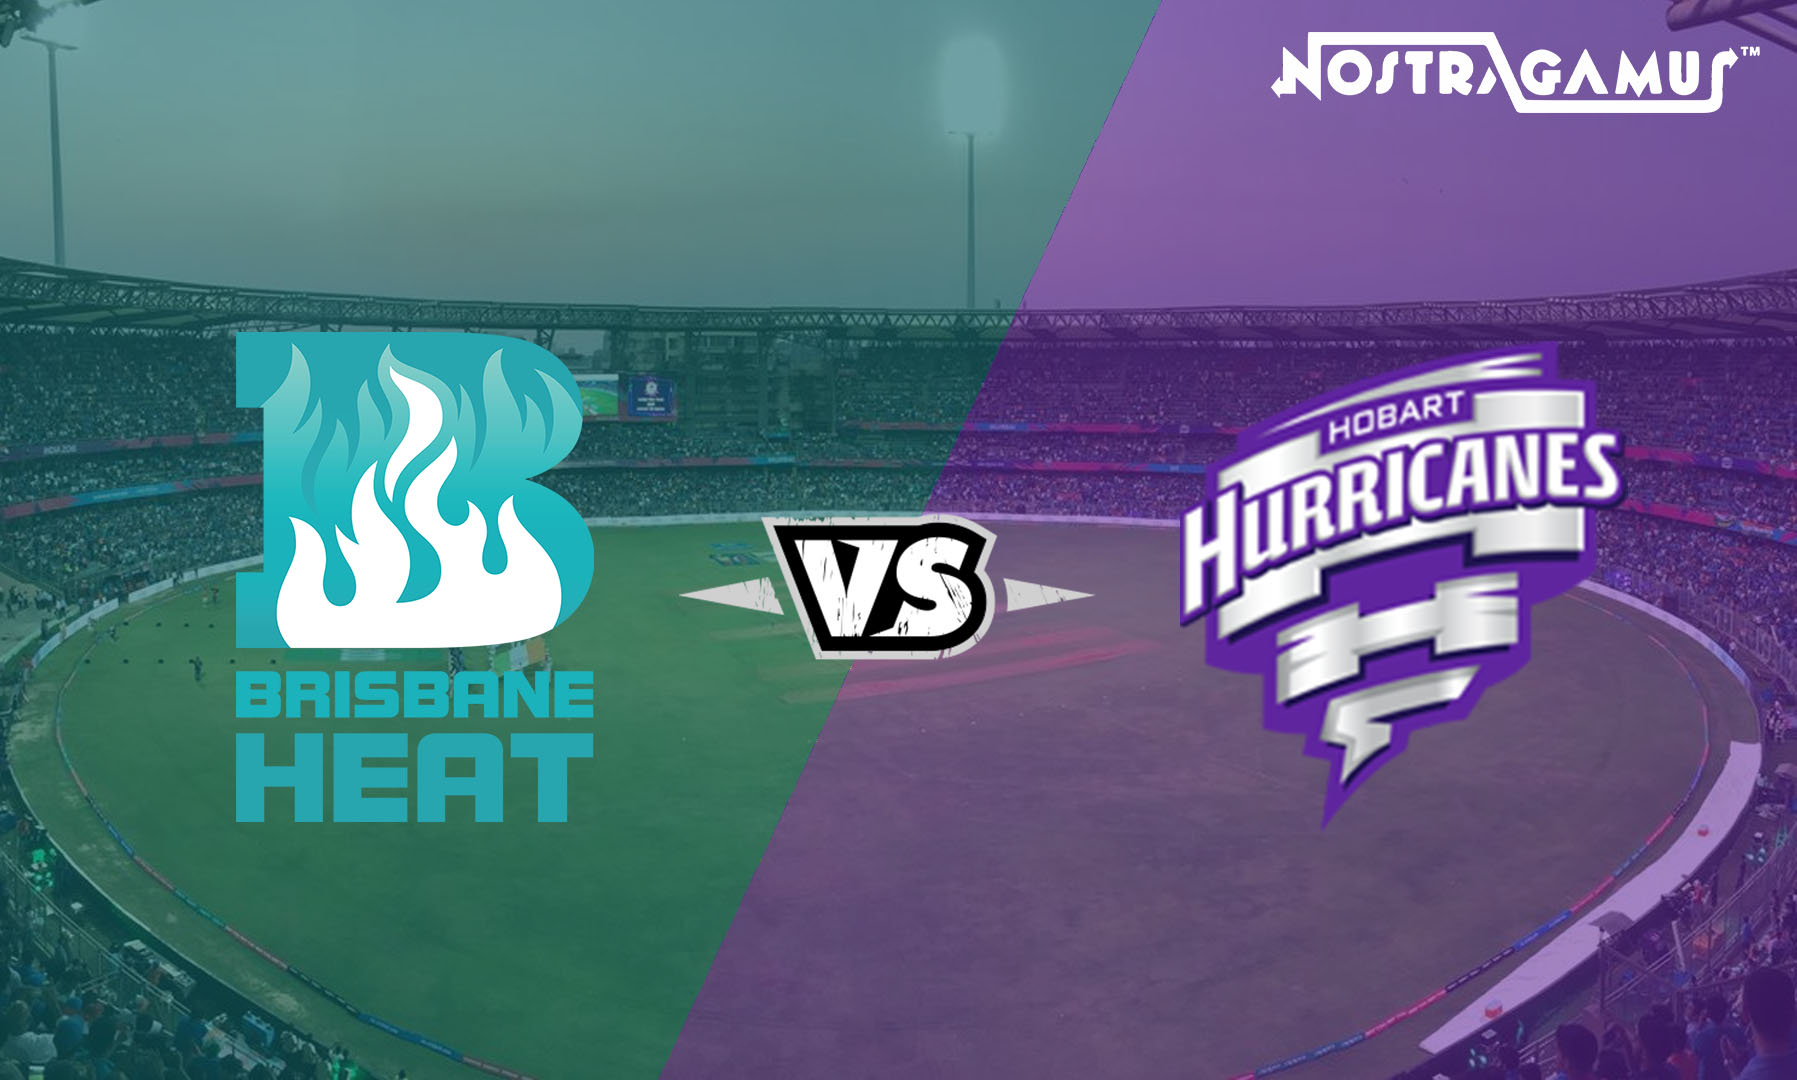 BBL 2019 Match Prediction: Brisbane Heat vs Hobart Hurricanes